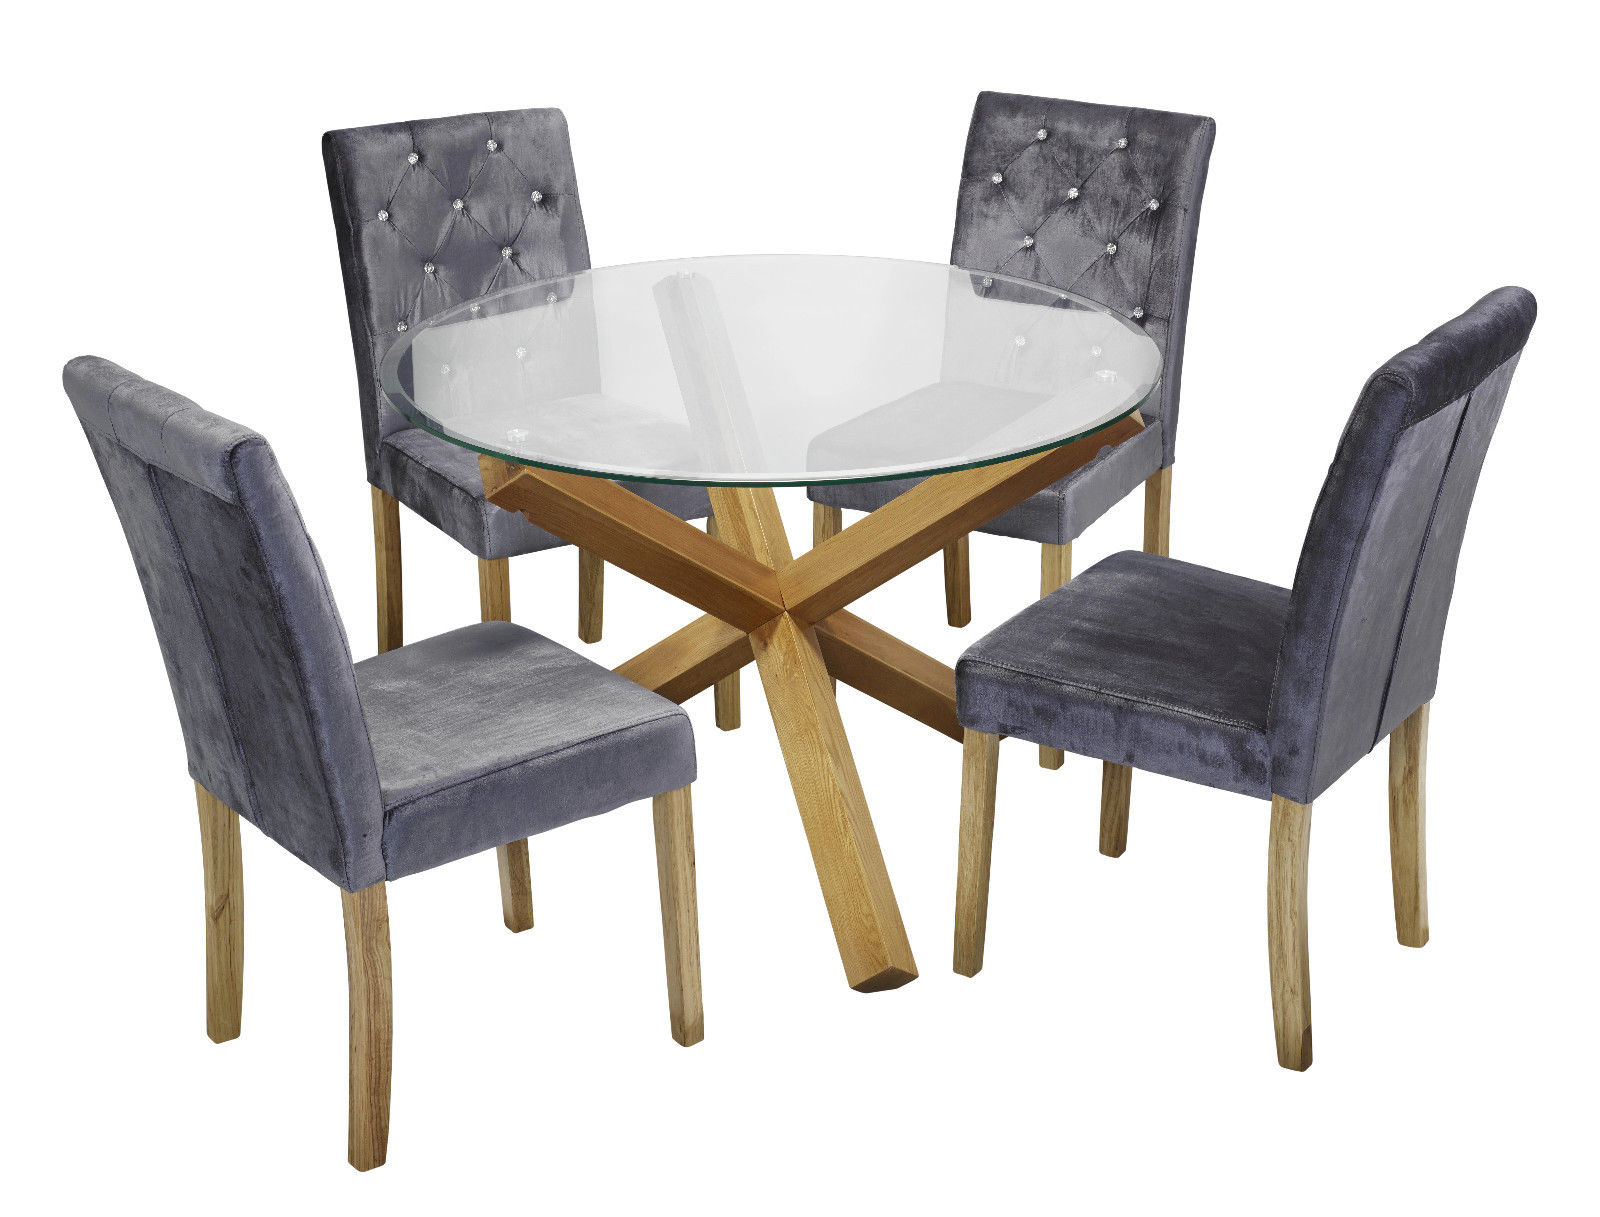 Round Glass Top Dining Tables intended for Newest Details About Trend Solid Oak Round Glass Top Dining Table & 4 Amour Silver  Fabric Chair Set